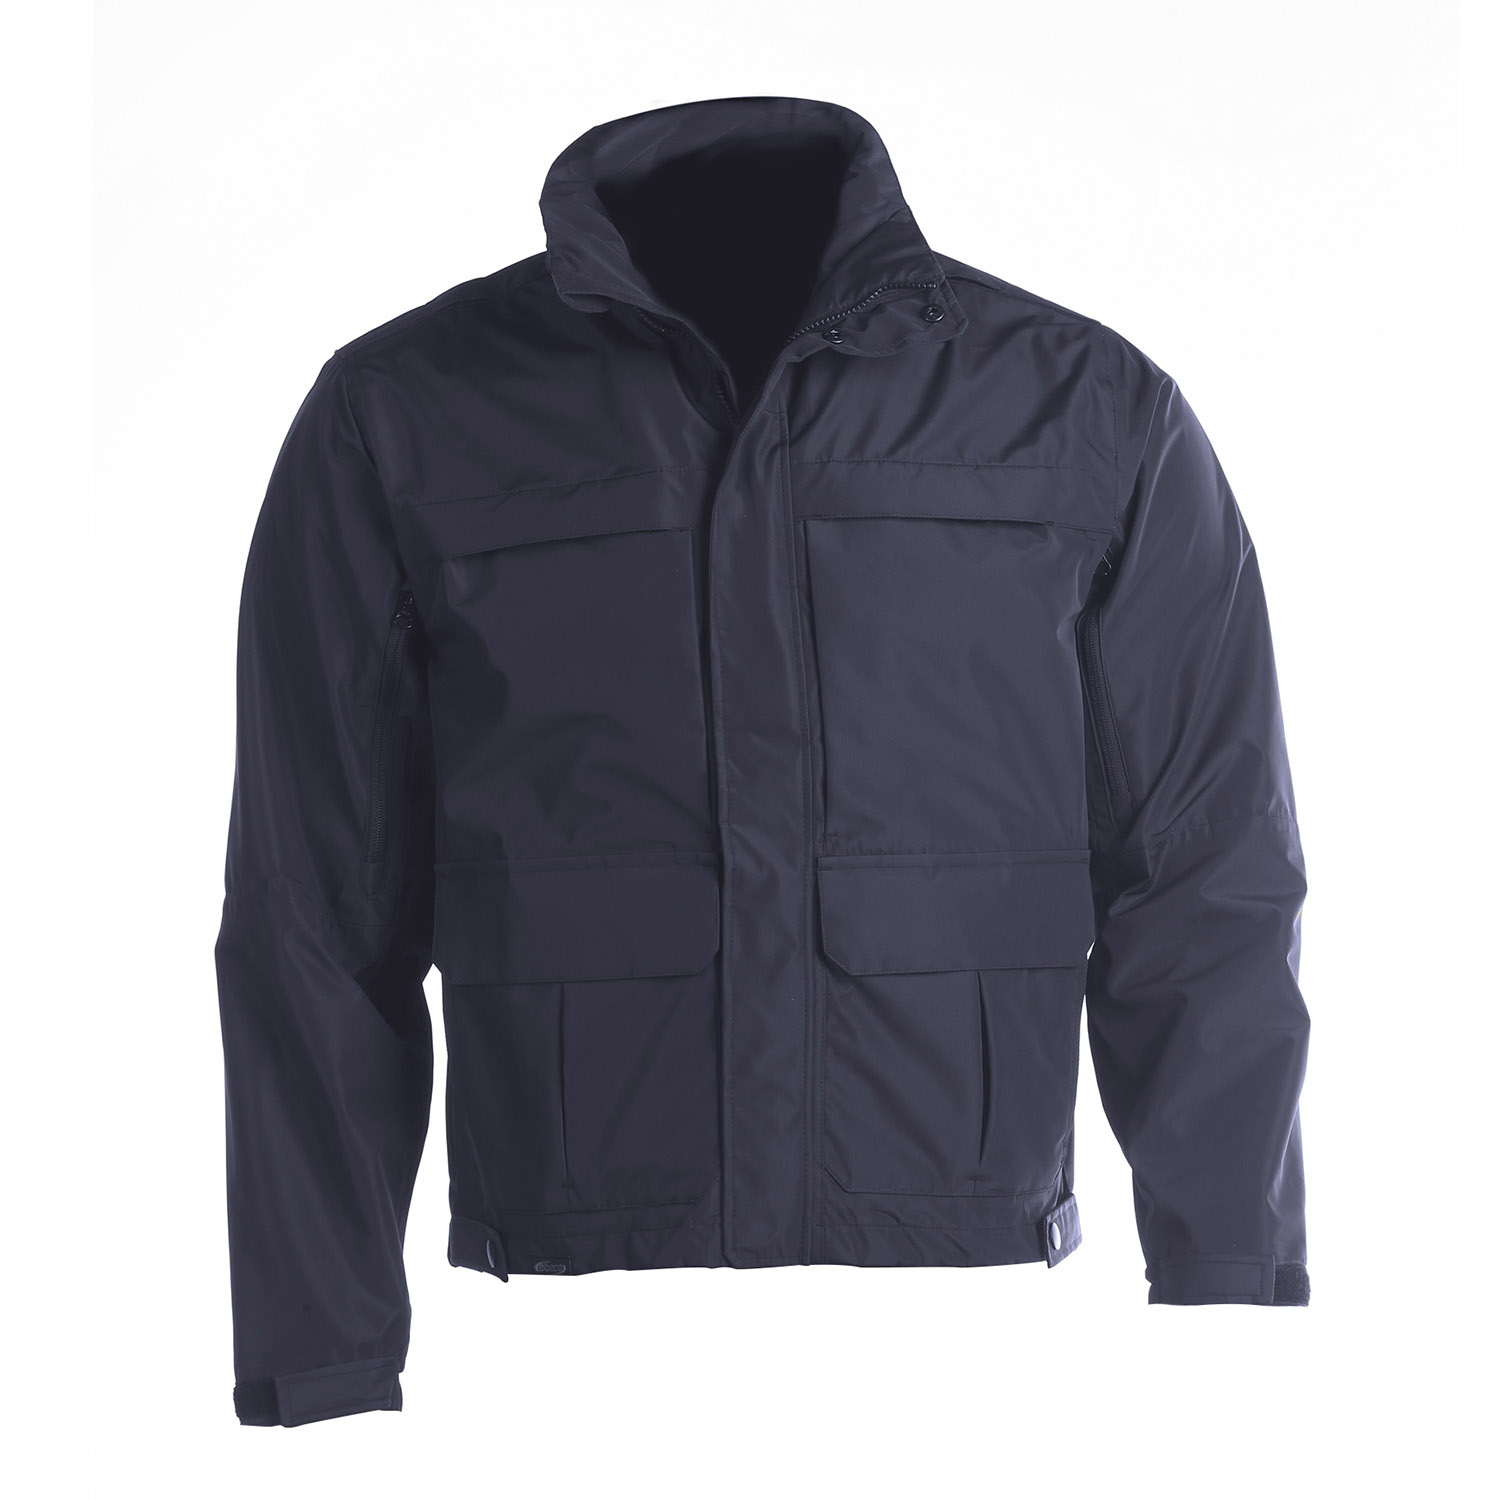 Elbeco Shield Duty Jacket with Performance Softshell Jacket